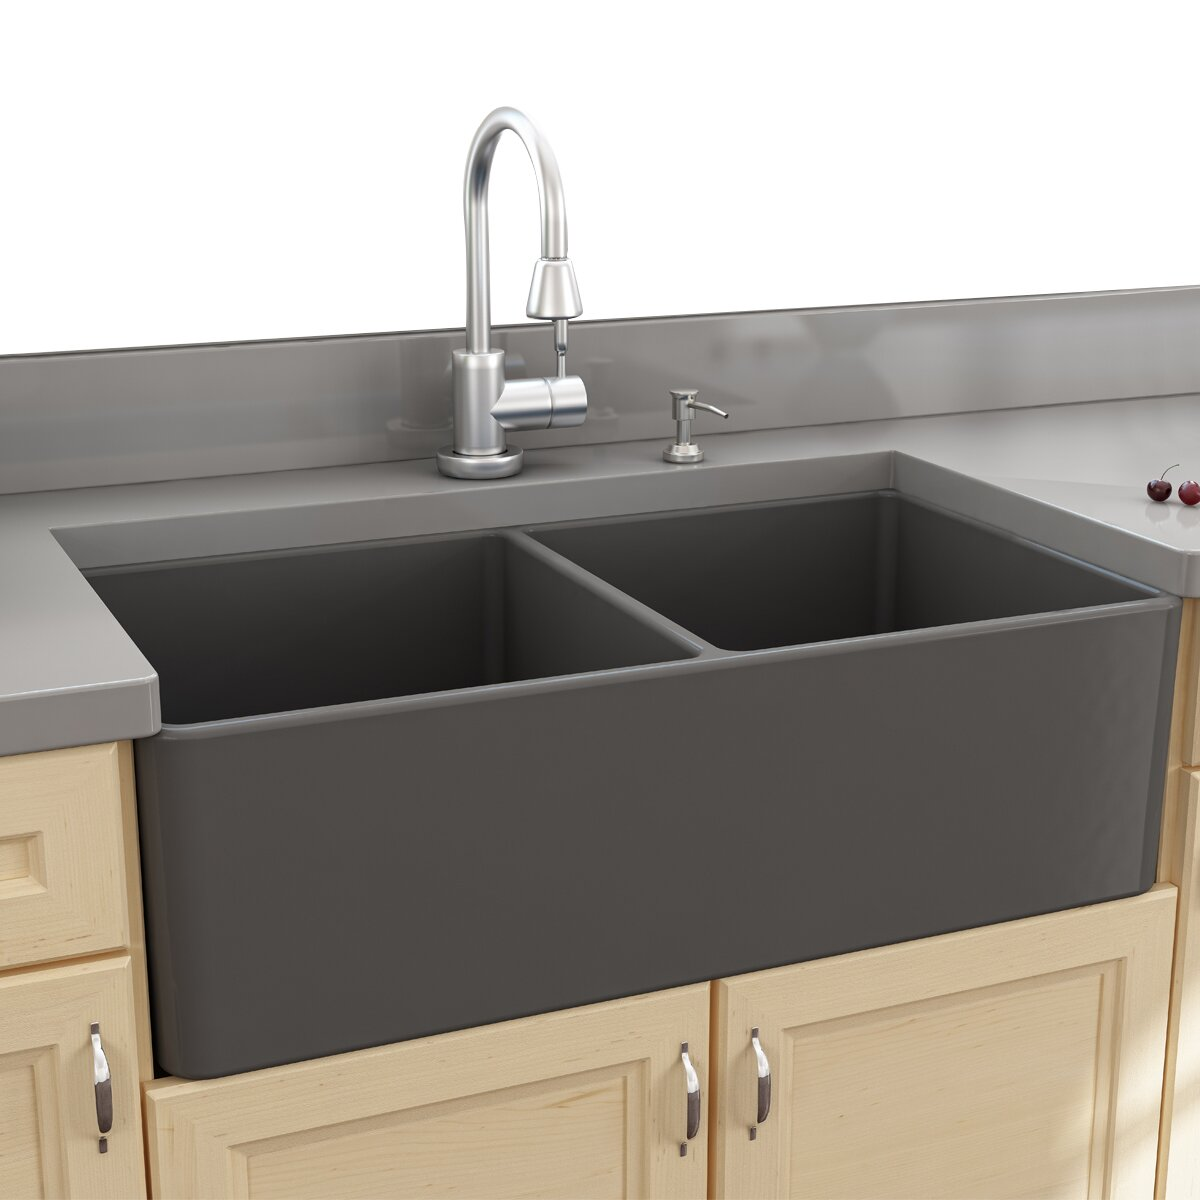 Nantucket Sinks Cape 33 25 Quot X 18 Quot Double Bowl Apron Kitchen Sink Amp Reviews Wayfair